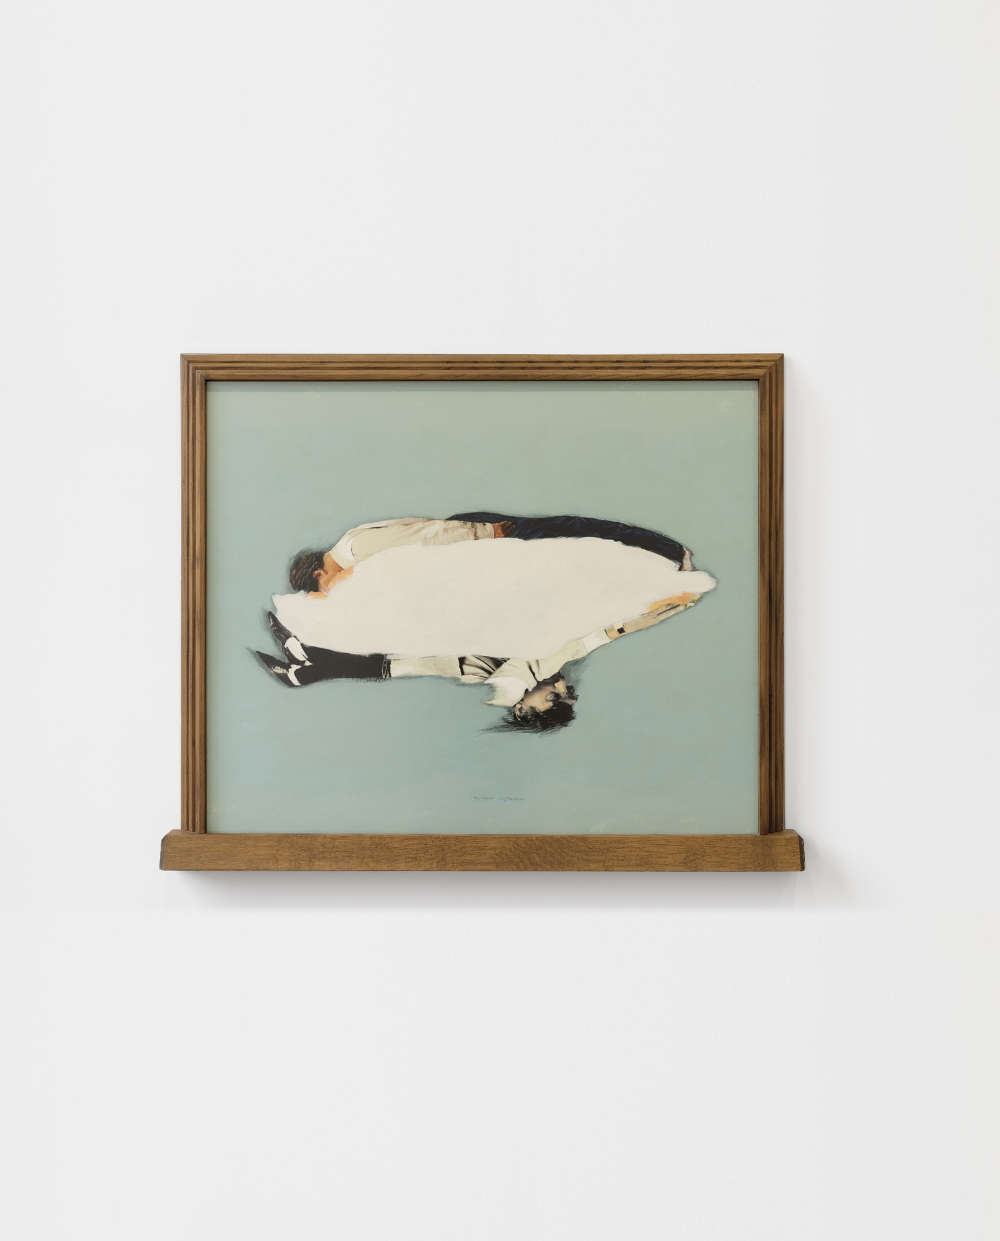 Ger van Elk, Cloudy Conscience (C de X), 1994. Color photograph and acrylic paint, wooden frame 94.9 x 113 x 6.7 cm 37 3/8 x 44 1/2 x 2 5/8 in